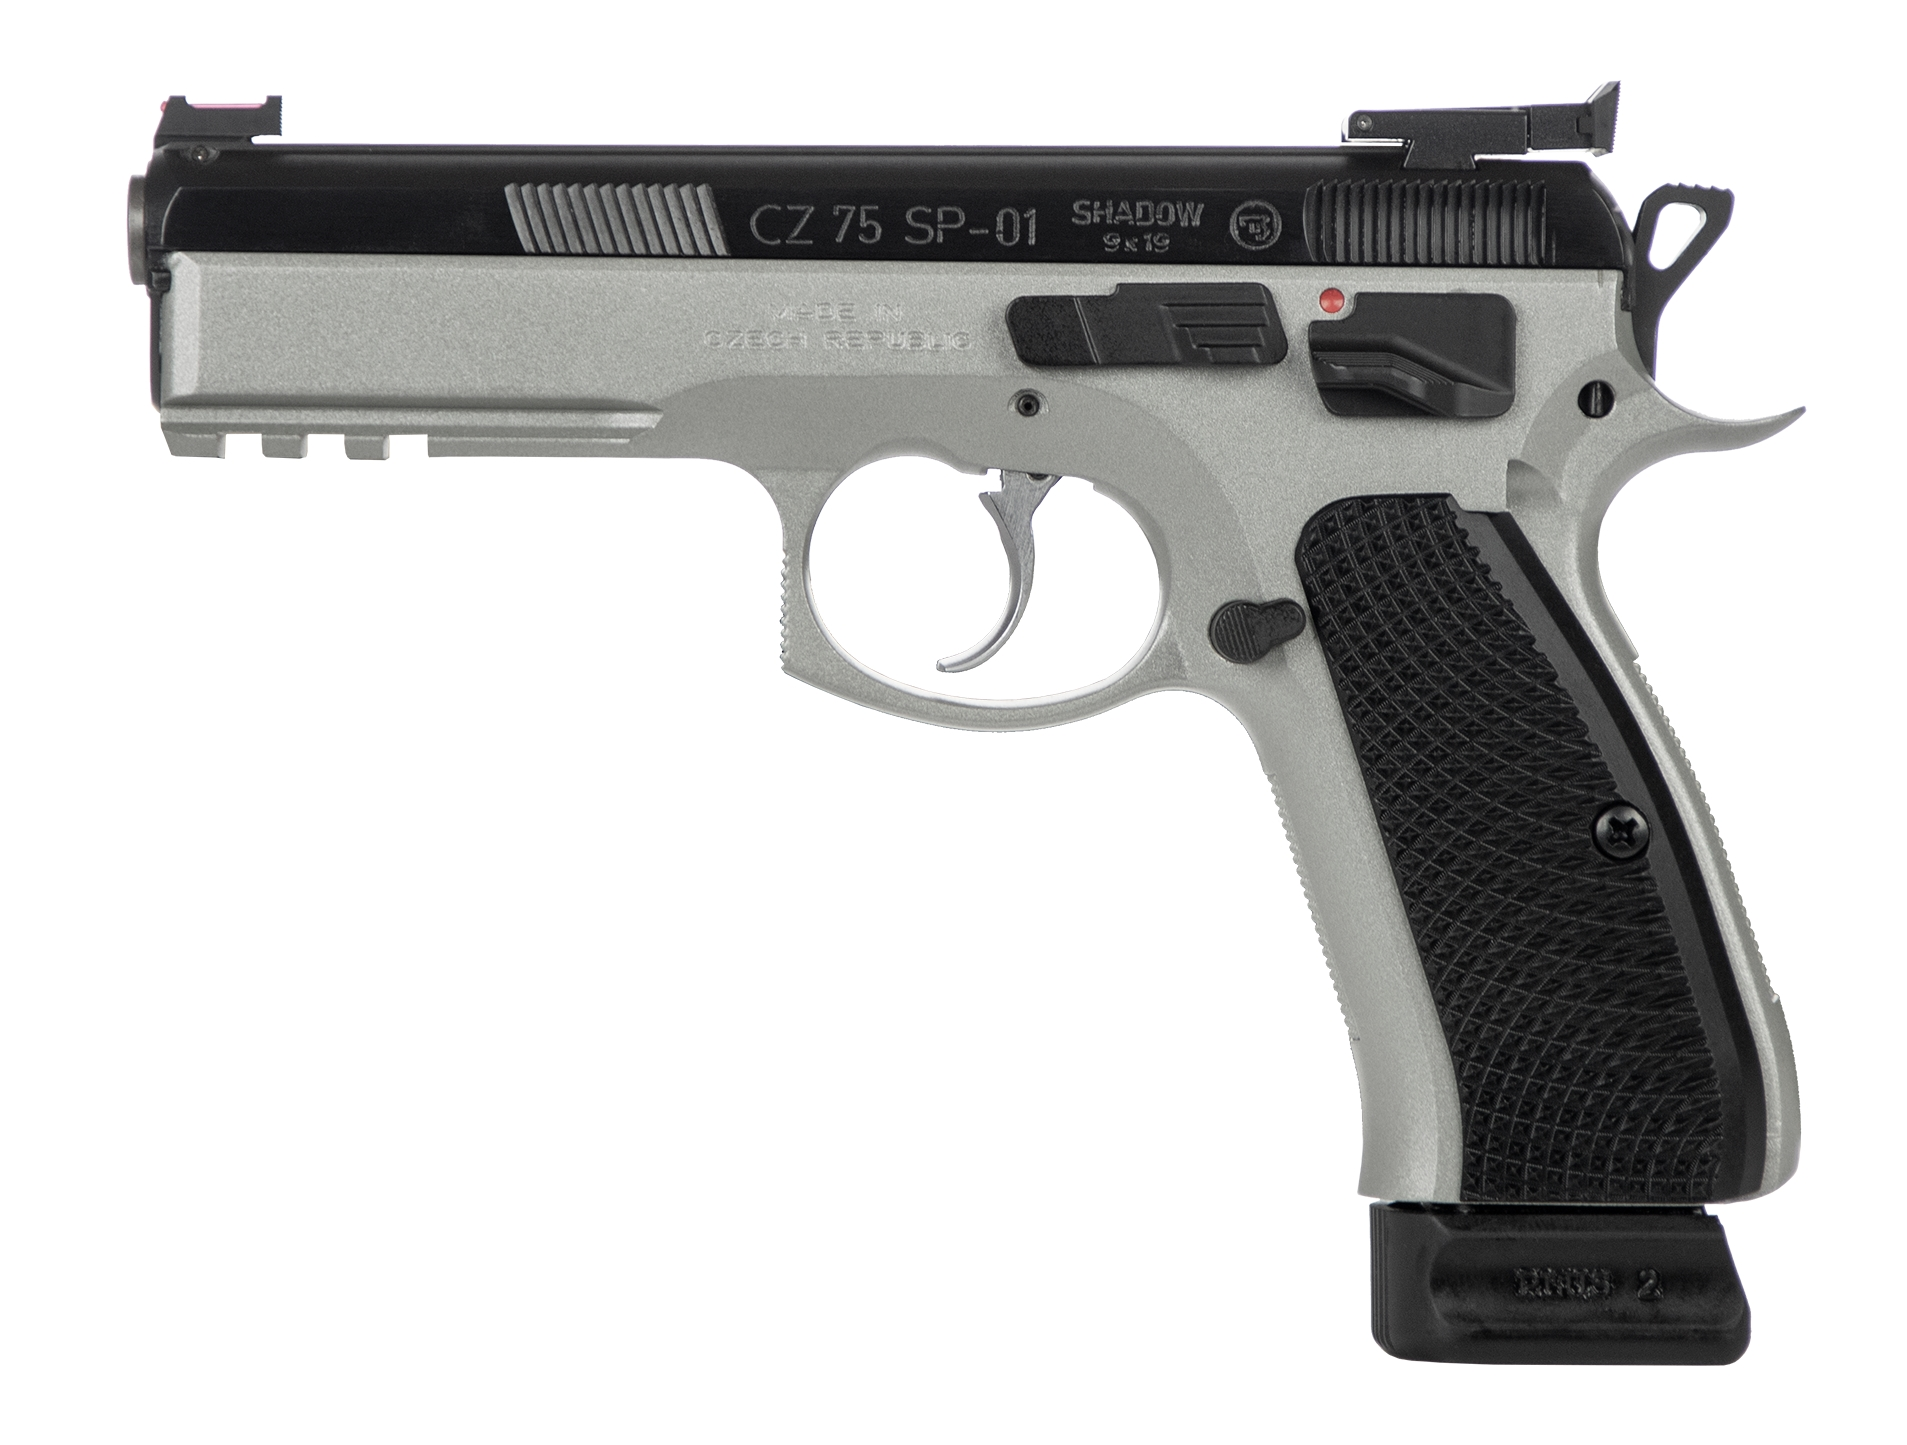 CZ-USA CZ 75 SP-01 Shadow Dual-Tone 9mm